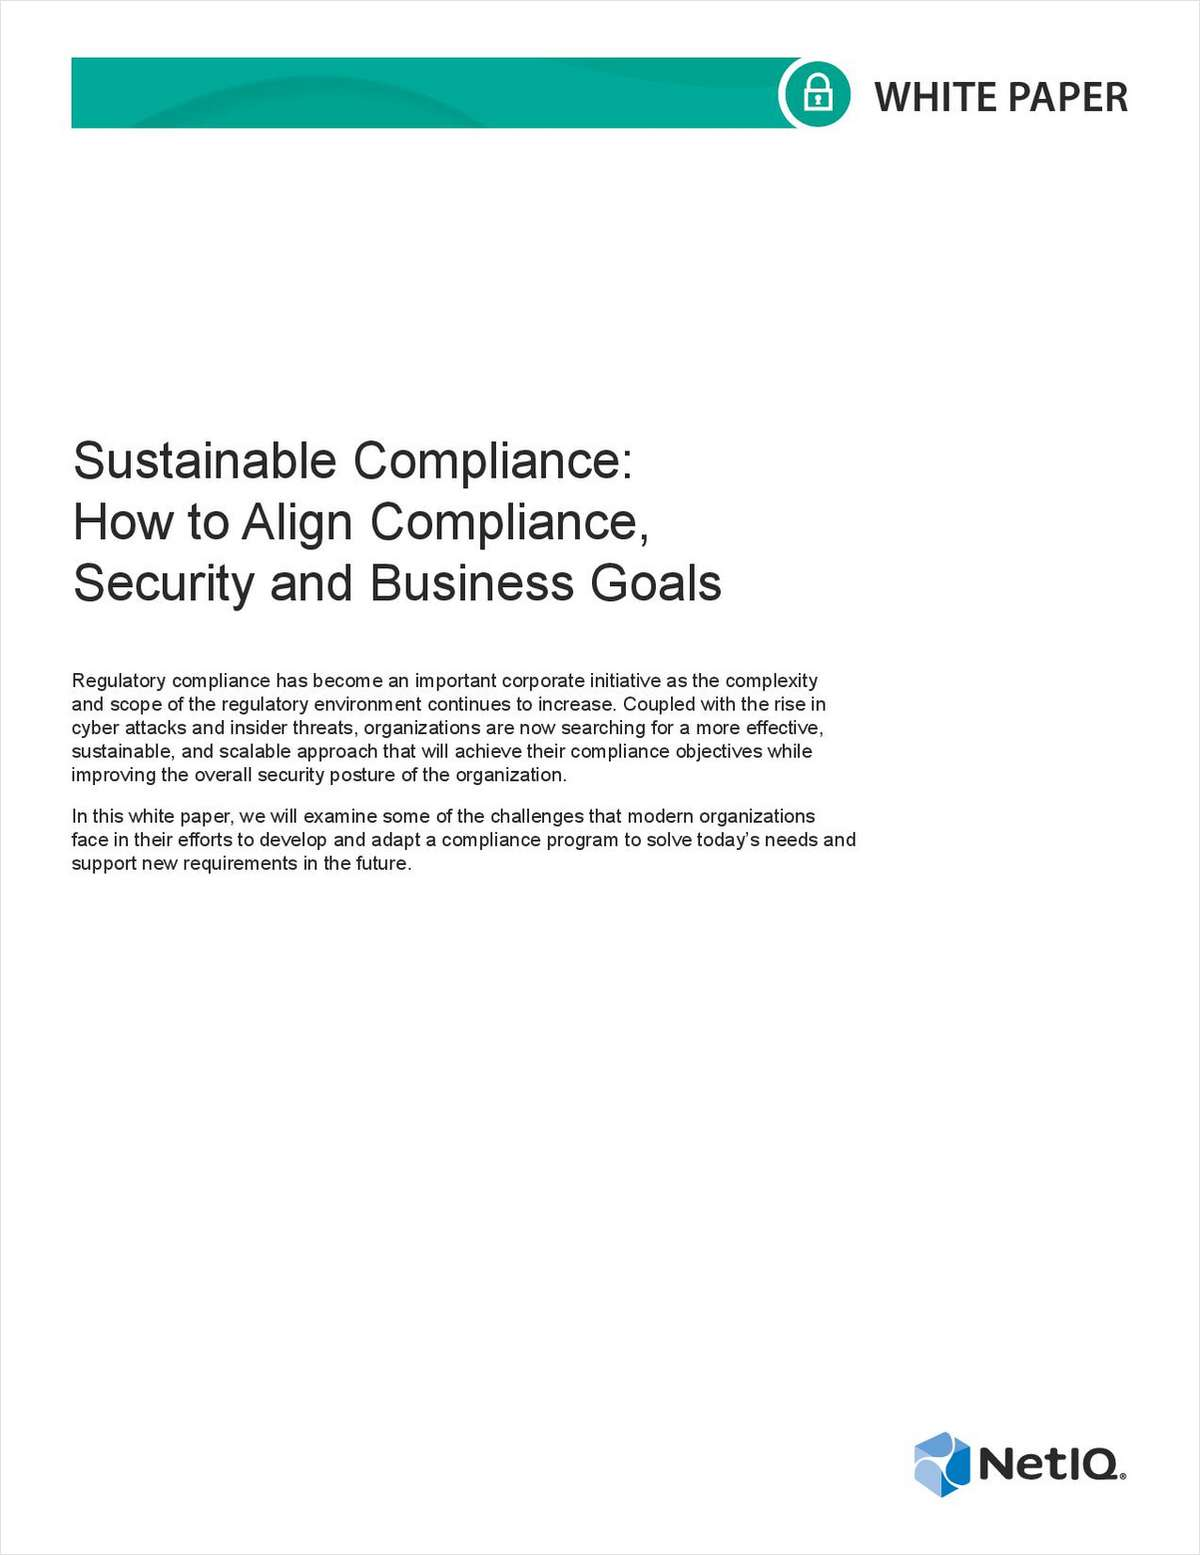 Sustainable Compliance: How to Align Compliance, Security and Business Goals